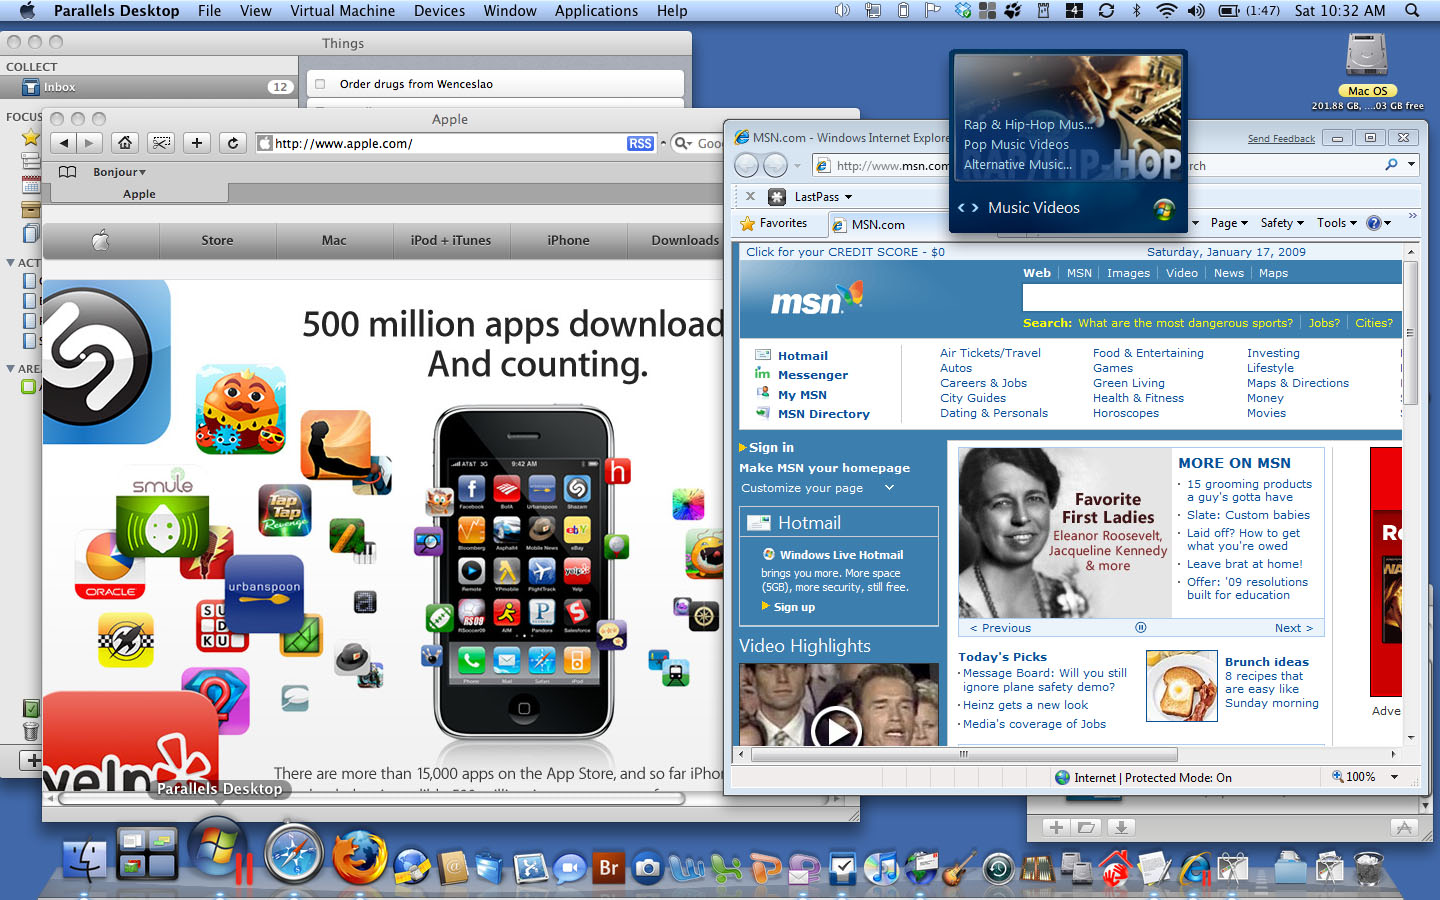 Safari 5.1 6 Download For Windows 7 - profilesoft